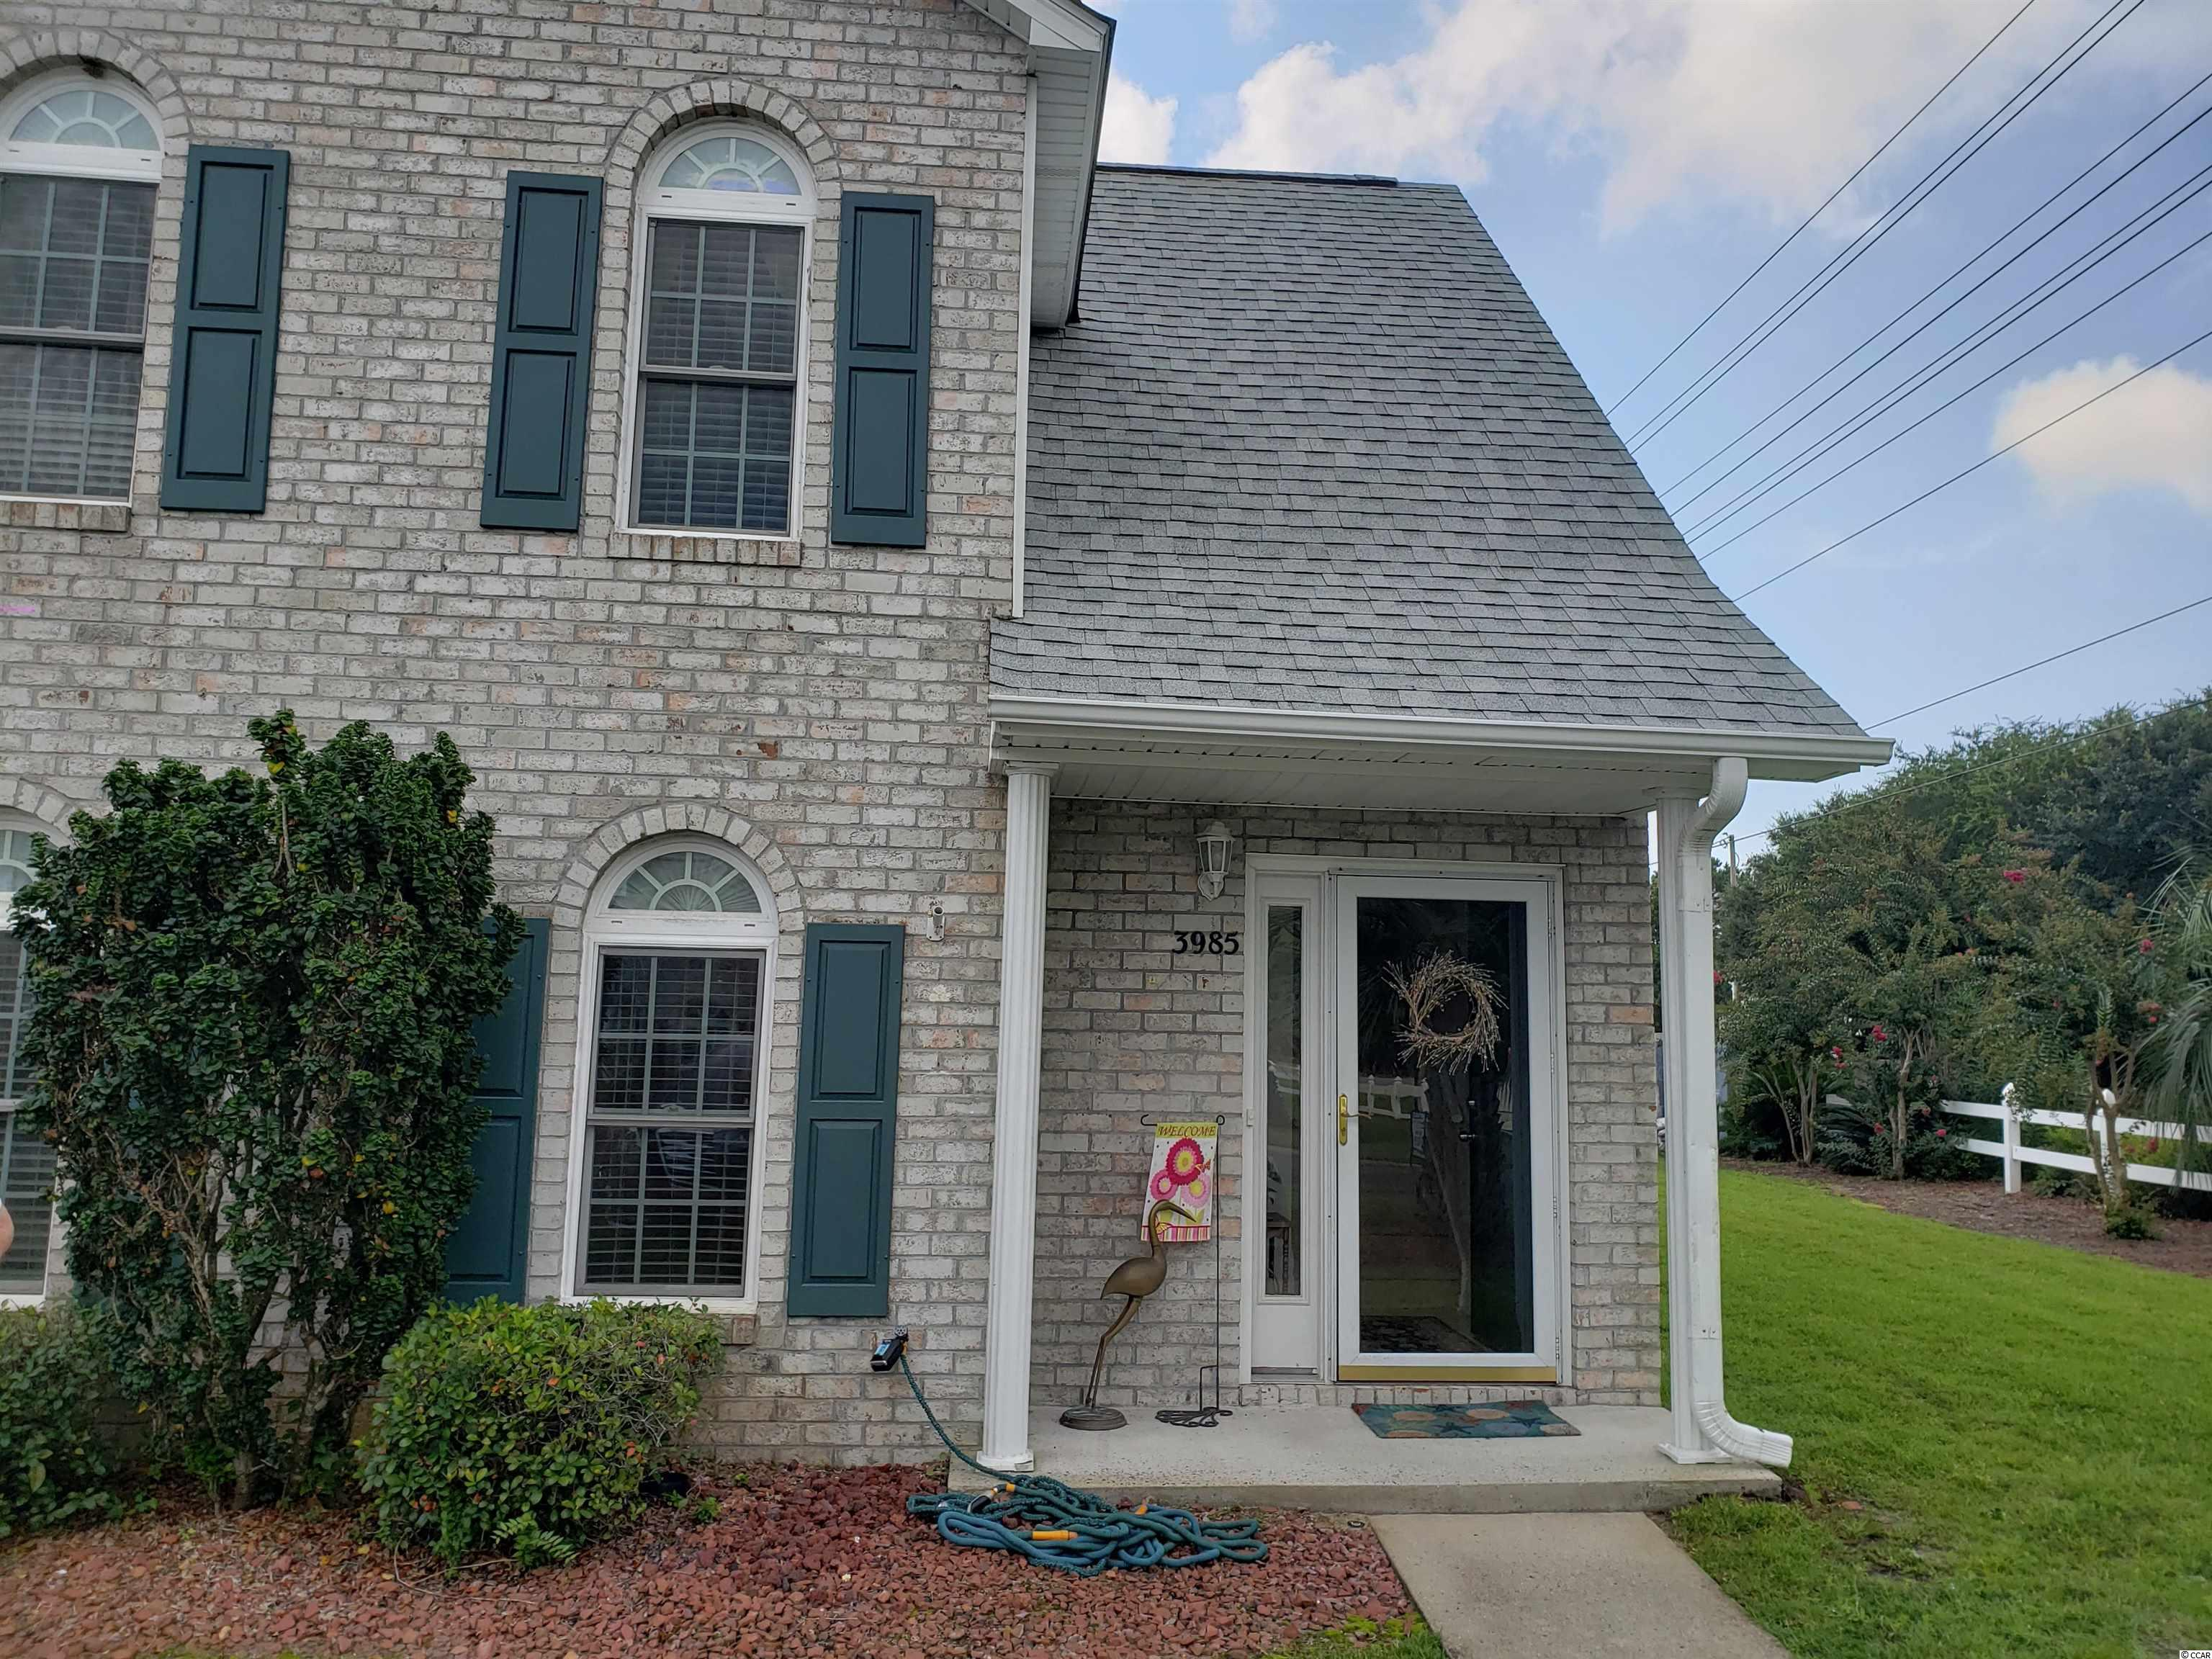 THIS VERY WELL MAINTAINED 3 BEDROOM, 2 BATH TOWNHOUSE IS AN END UNIT.  COMES FURNISHED, MOVE IN READY.  NEWER LAMINATE FLOORING DOWNSTAIRS.  EASY ACCESS TO 17, TO LITTLE RIVER WATERFRONT AND LESS THAN 10 MINUTES TO THE BEACHES OF CHERRY GROVE AND NORTH MYRTLE BEACH.  ROOF INSTALLED IN 2019, HVAC REPLACED IN 2020.  ALL APPLIANCES CONVEY ALONG WITH WASHER/DRYER.  CAROLINA ROOM IS COOLED WITH AIR CONDITIONER.  LOVELY BACK AND SIDE YARD TO ENJOY.  LARGE SQUARE FOOTAGE CONDO WITH TONS OF STORAGE.  CLOSETS, CLOSETS AND MORE CLOSETS.